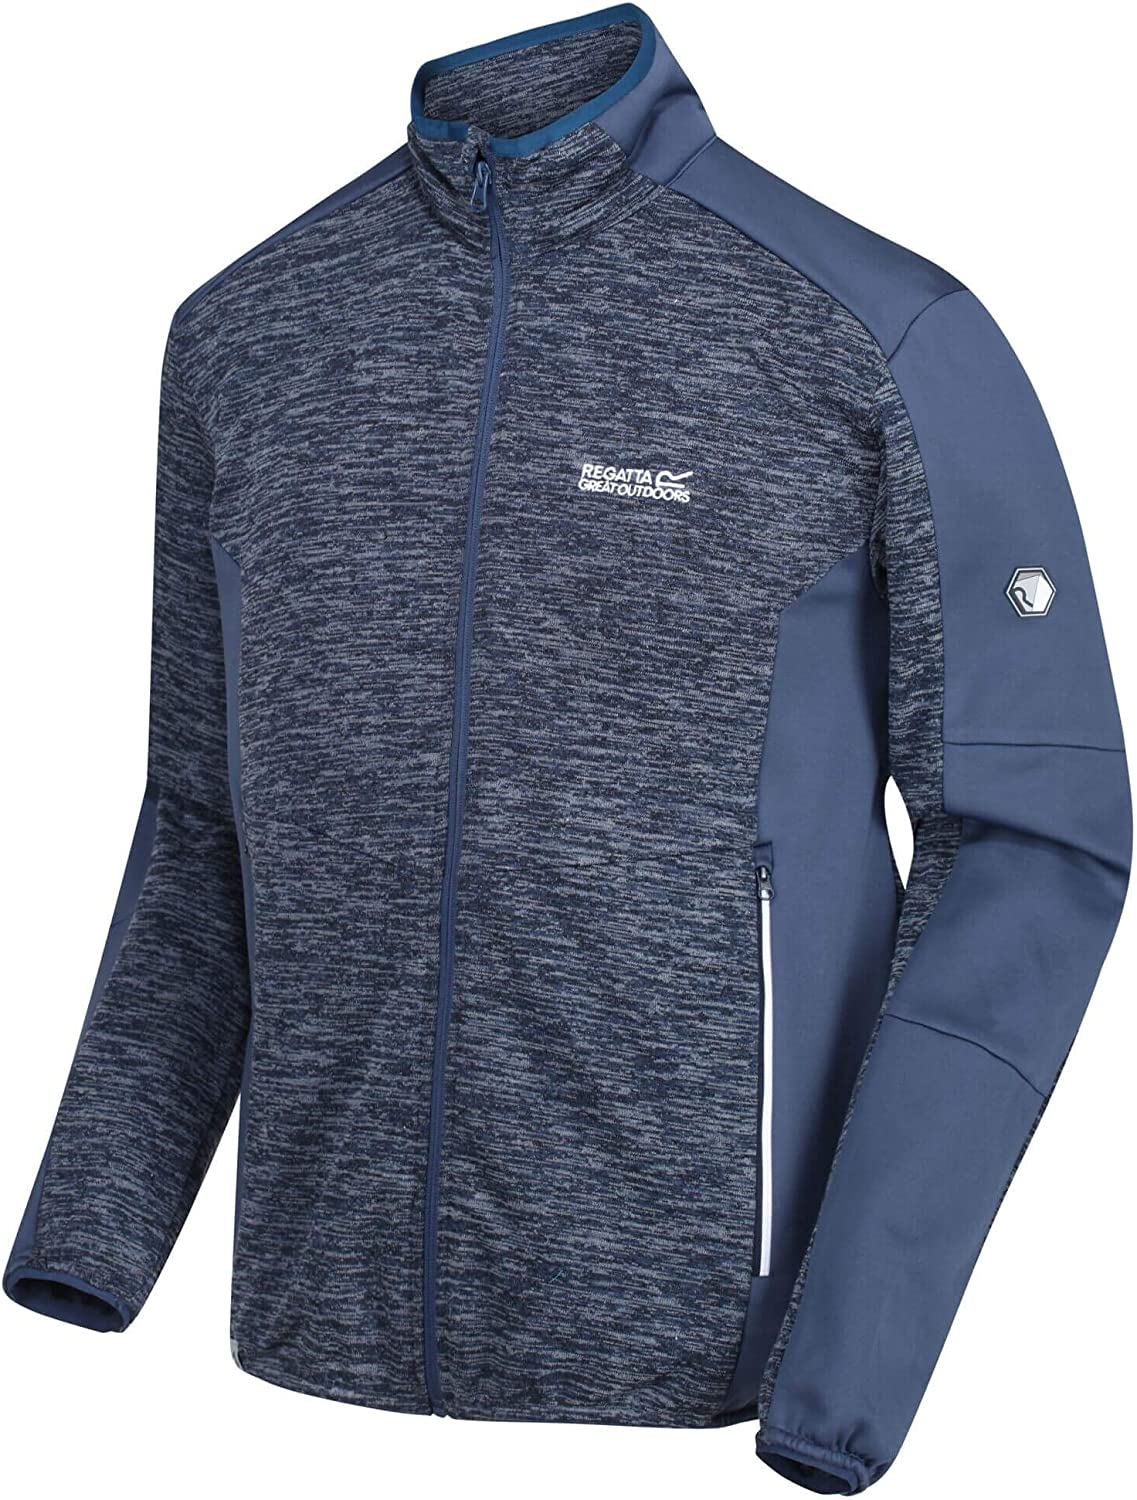 Regatta Coladane Stretch Inserts Softshell Jacket with Zipped Pockets Polaire Homme